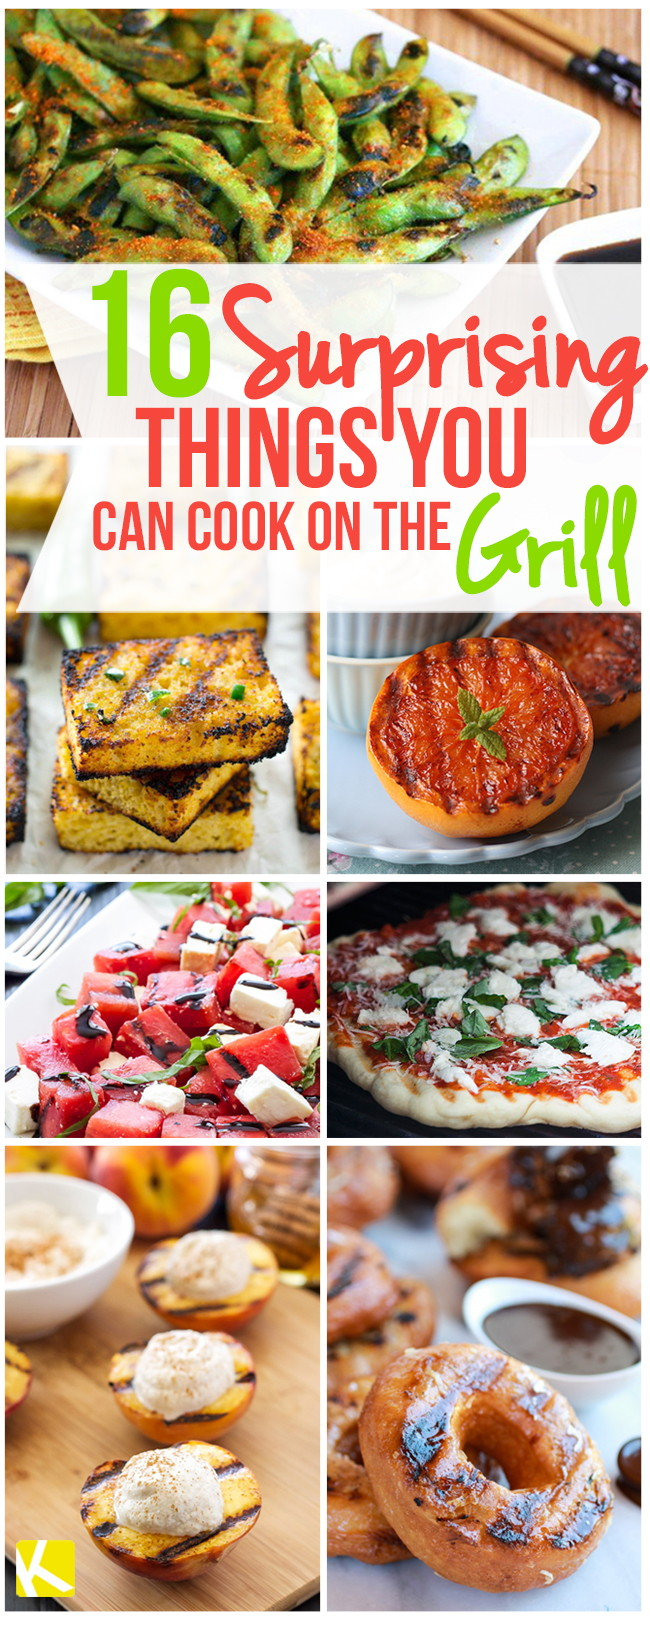 16 Surprising Things You Can Cook On The Grill The Krazy Coupon Lady